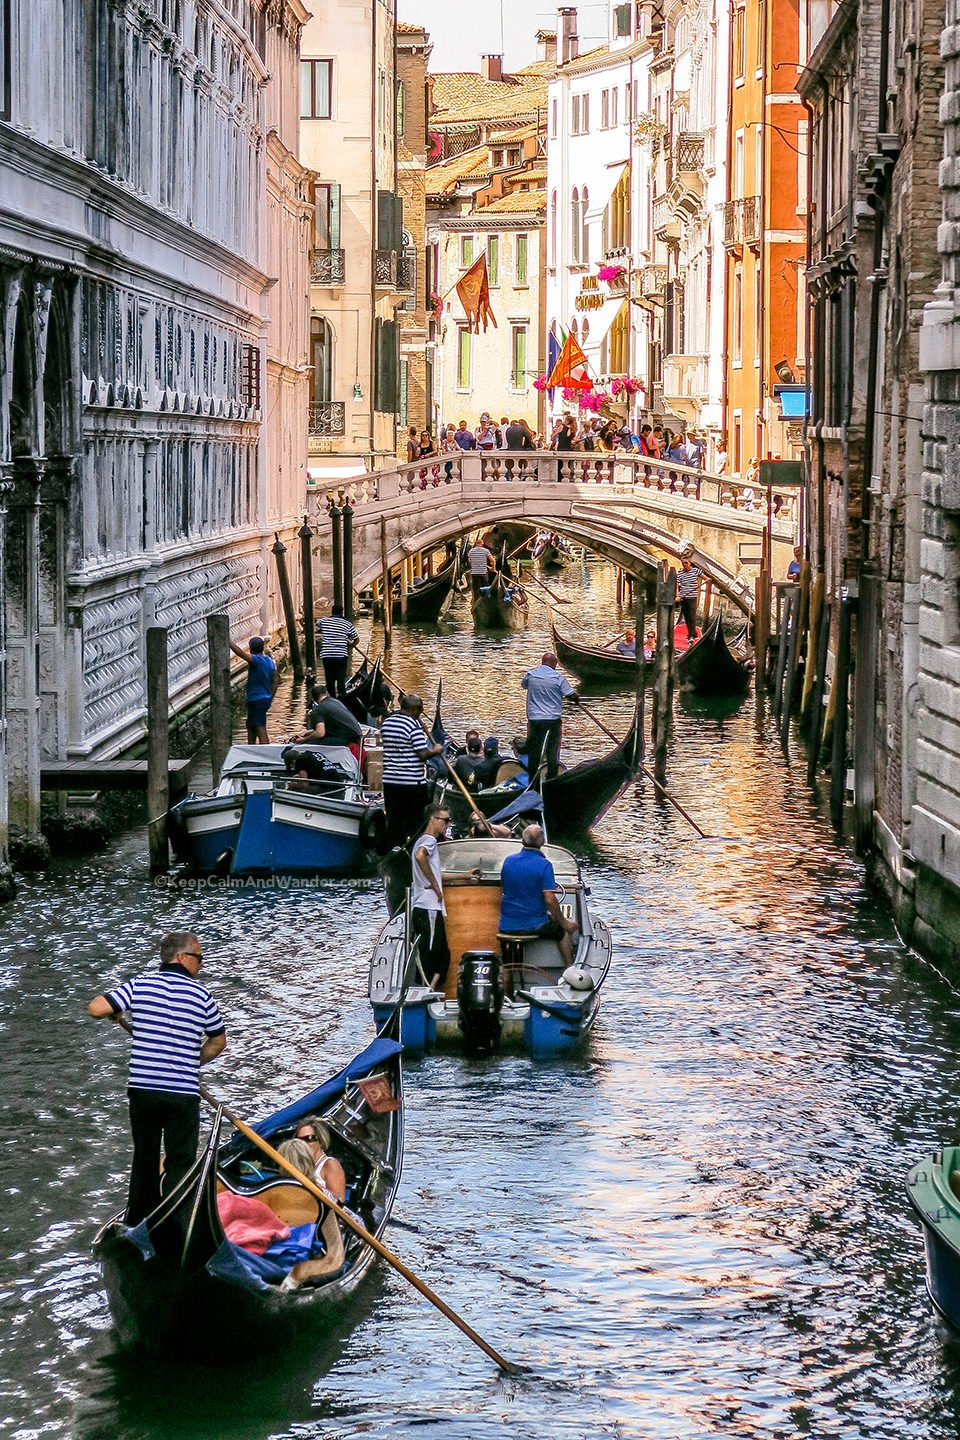 Bridge of Sighs is the Only Bridge in the World That Connects a Palace and a Prison (Venice, Italy).